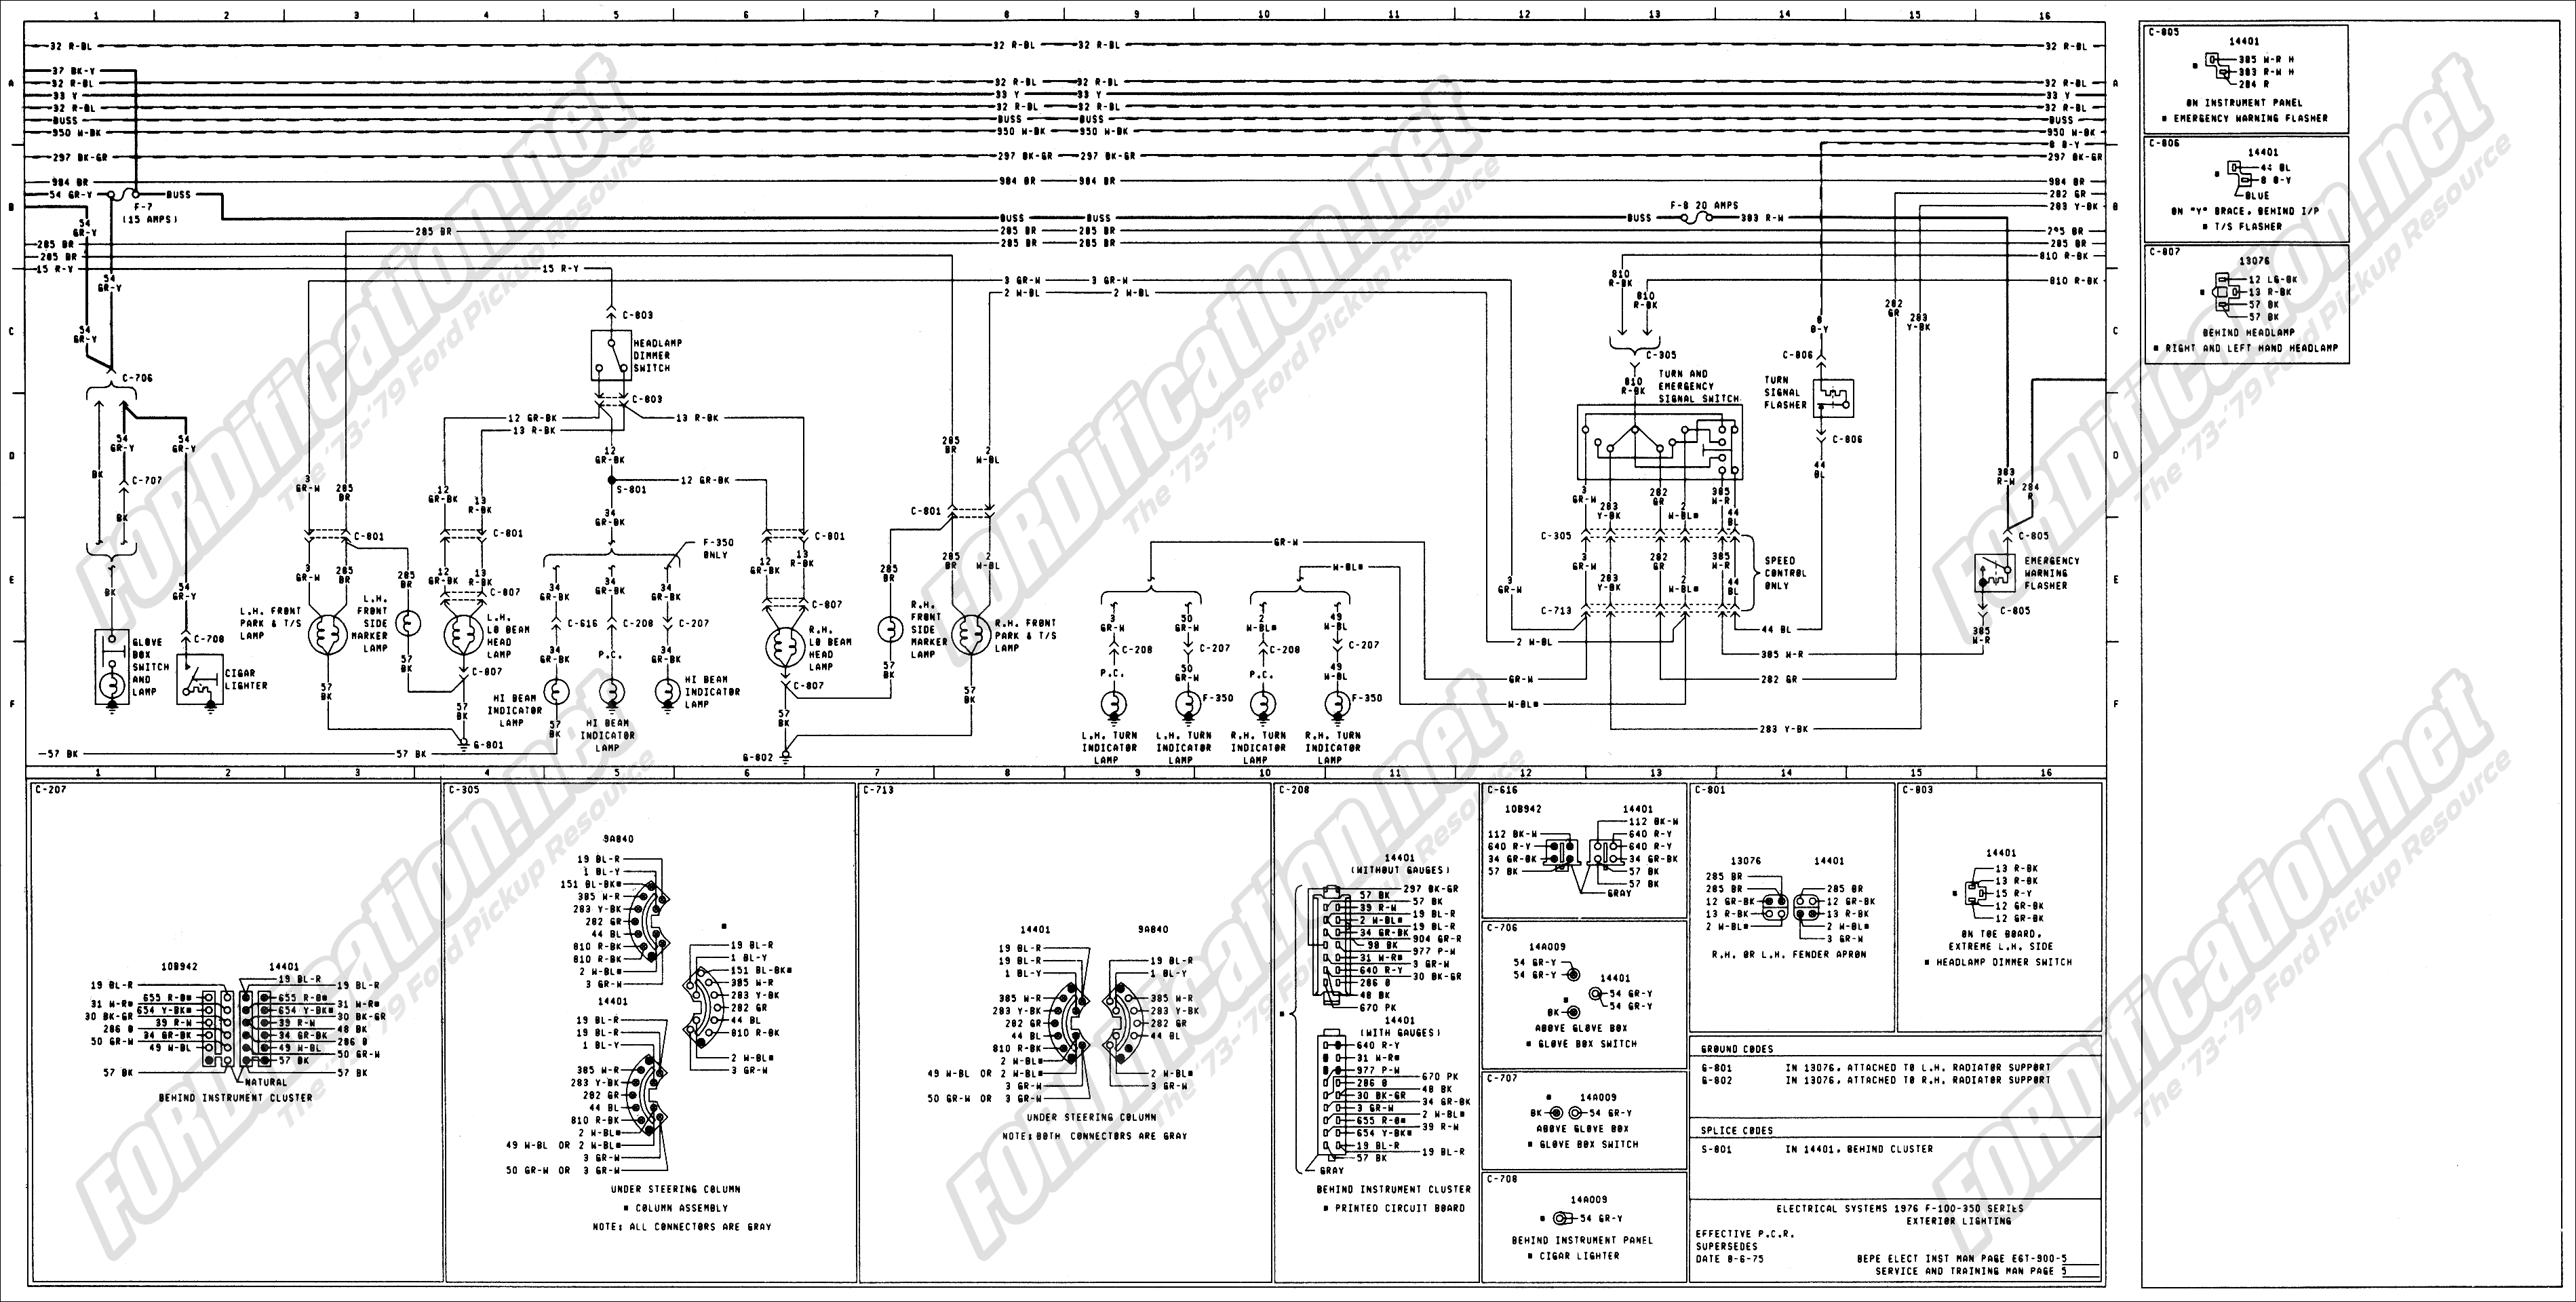 wiring_76master_5of9 1973 1979 ford truck wiring diagrams & schematics fordification net 1969 ford f100 steering column wiring diagram at gsmportal.co